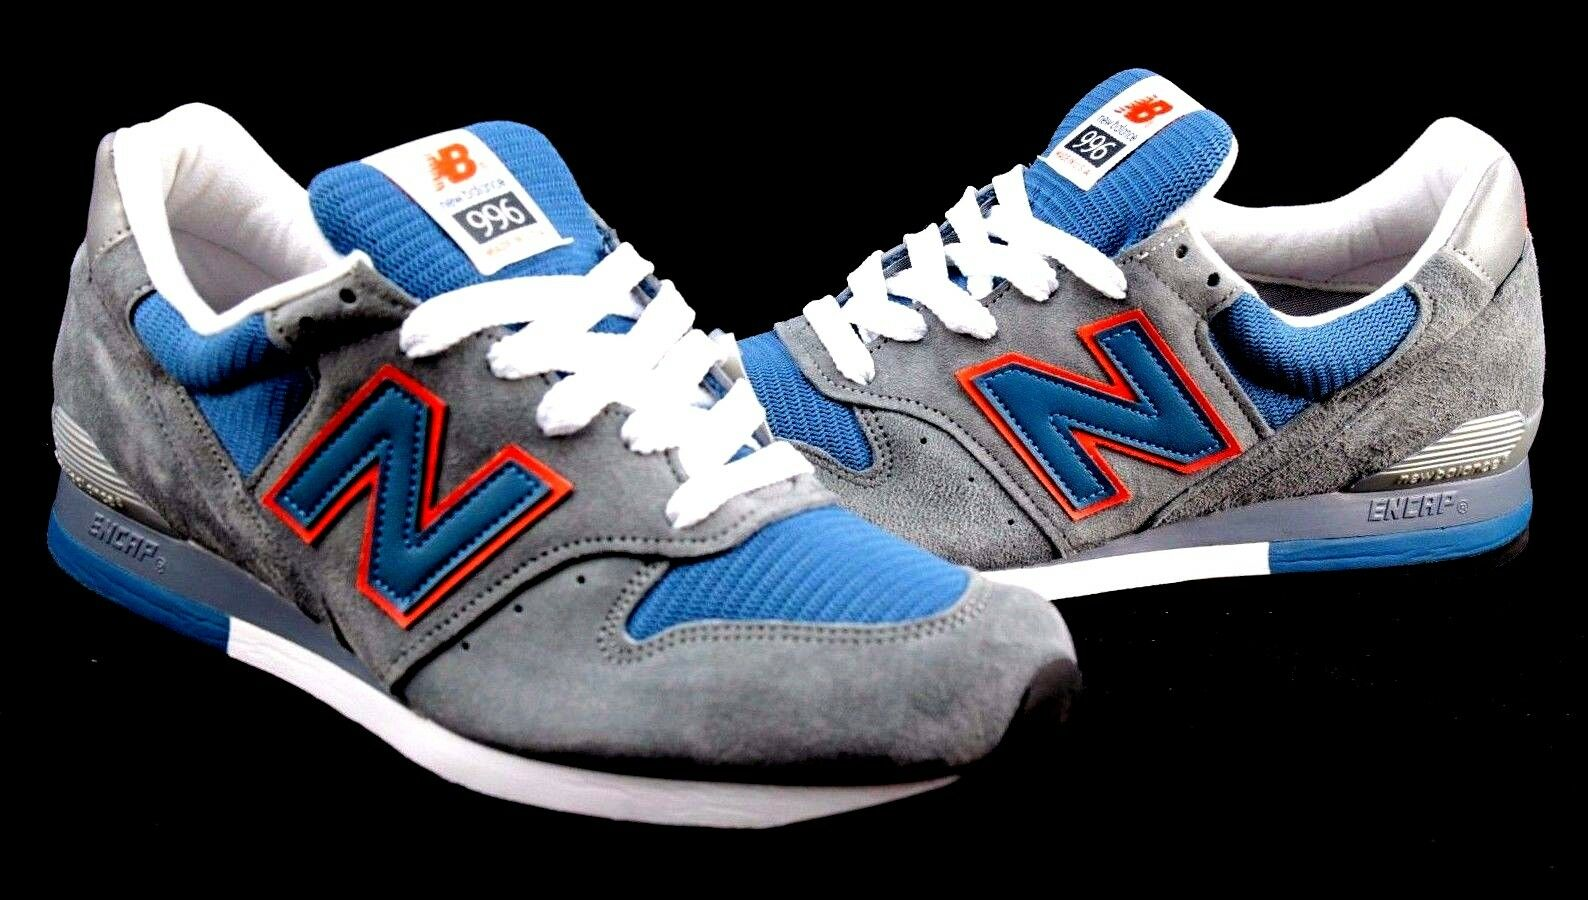 New Balance 996 Men's Connoisseur Ski  - Made in USA - M996CSBO Size 7.5-8.5